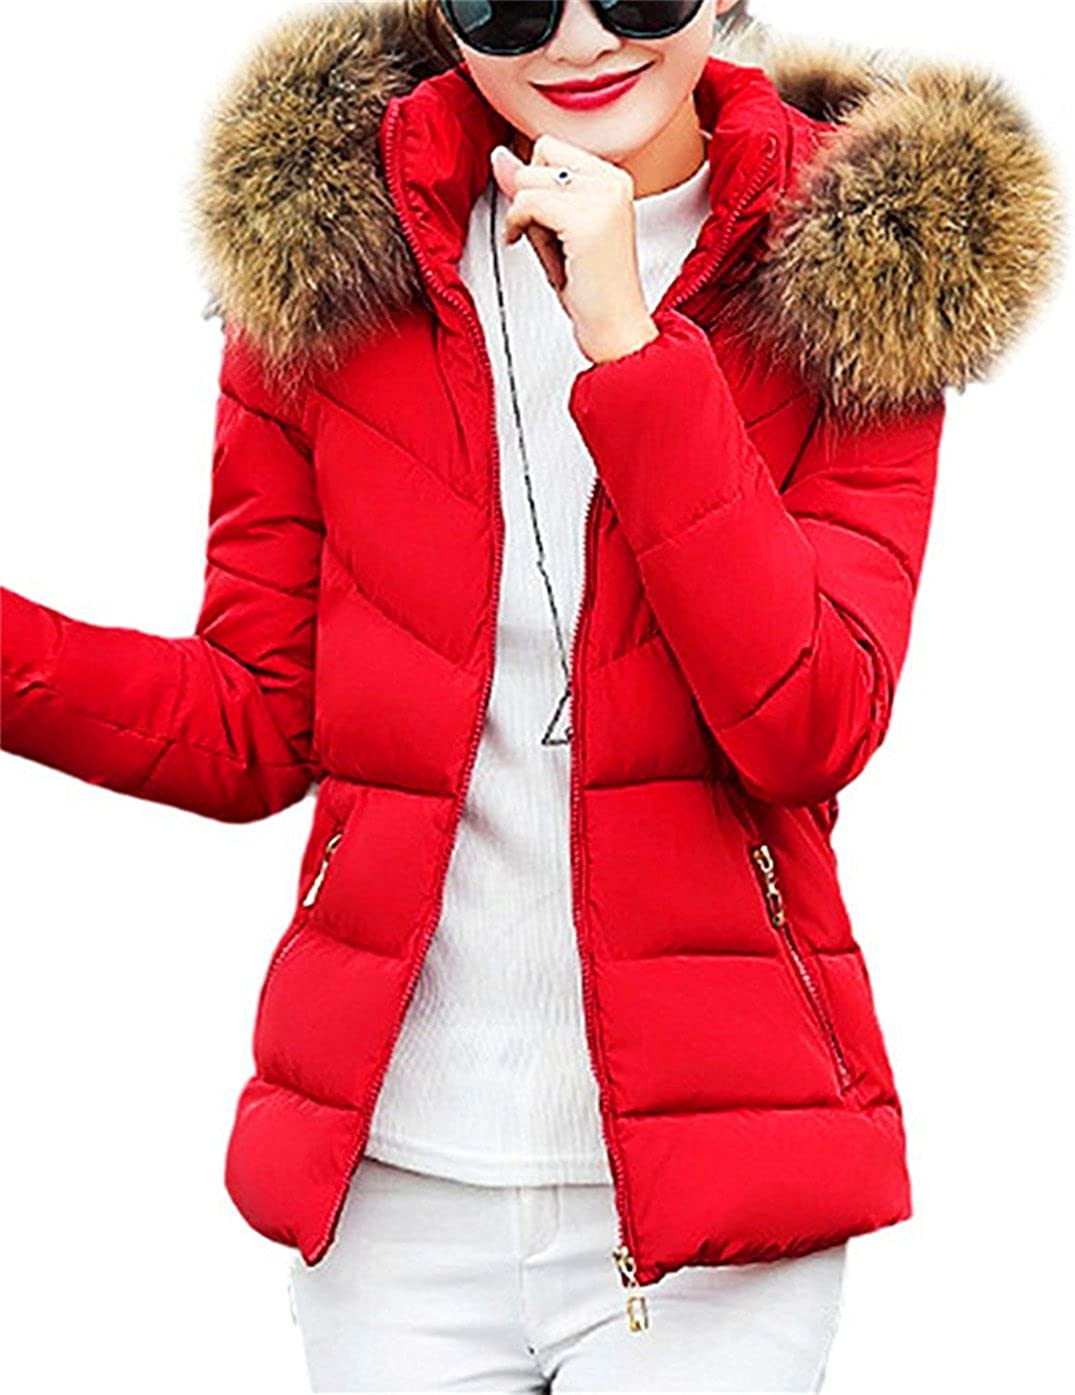 Geralds FASHION Women's Classic Winter Hooded Trench Jacket Warm Cotton Coat